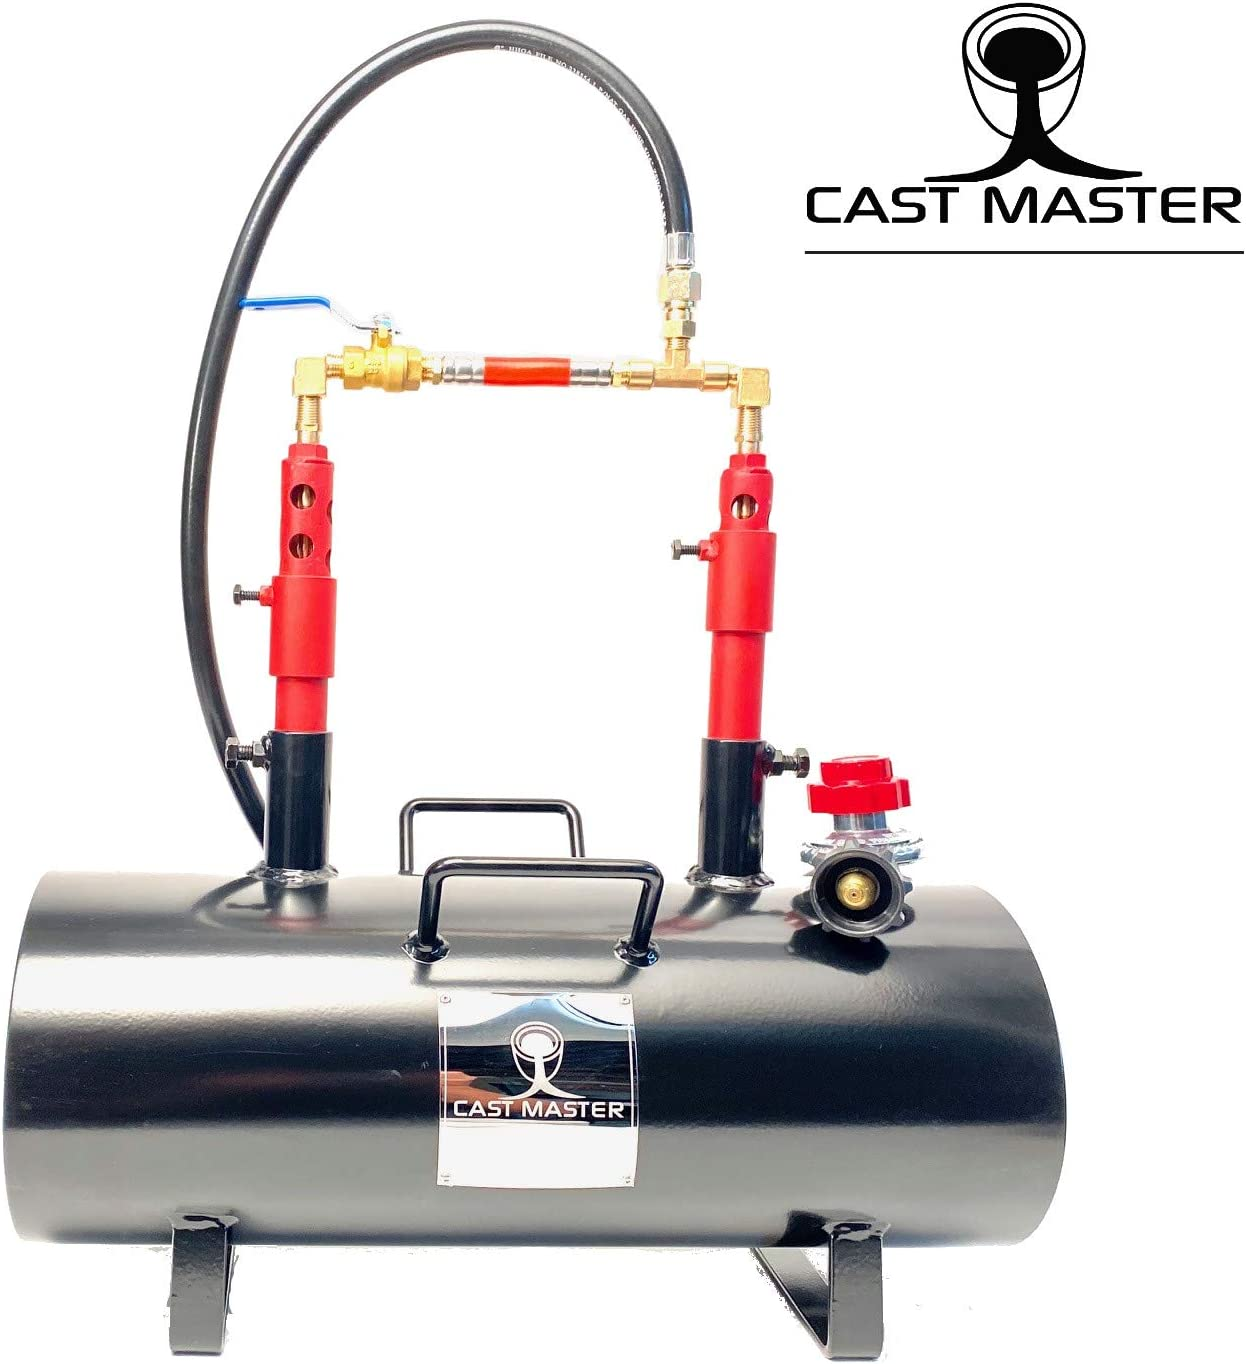 CAST Master Elite USA Portable Double Burner Propane Blacksmith Farrier Caster Kit Jewelry Large Capacity Knife and Tool Making Propane Forge SS